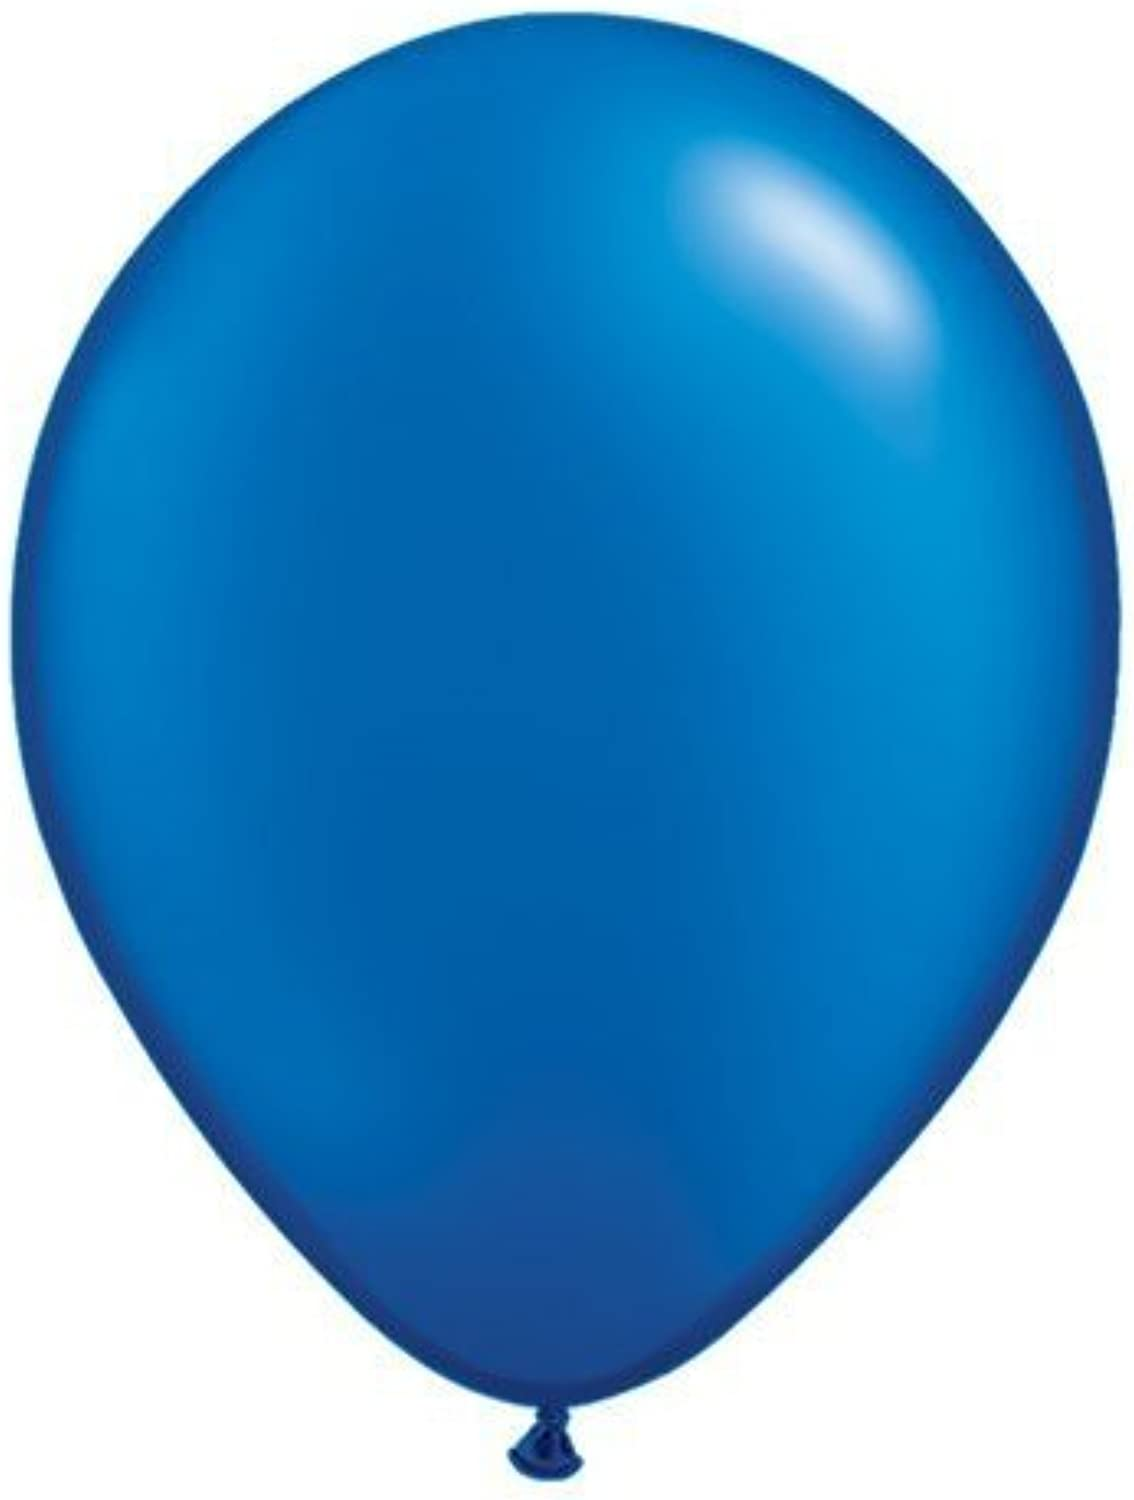 Pearl Sapphire bluee 5 Qualatex Latex Balloons x 10 by Pearlised Solid Colour 5 Latex